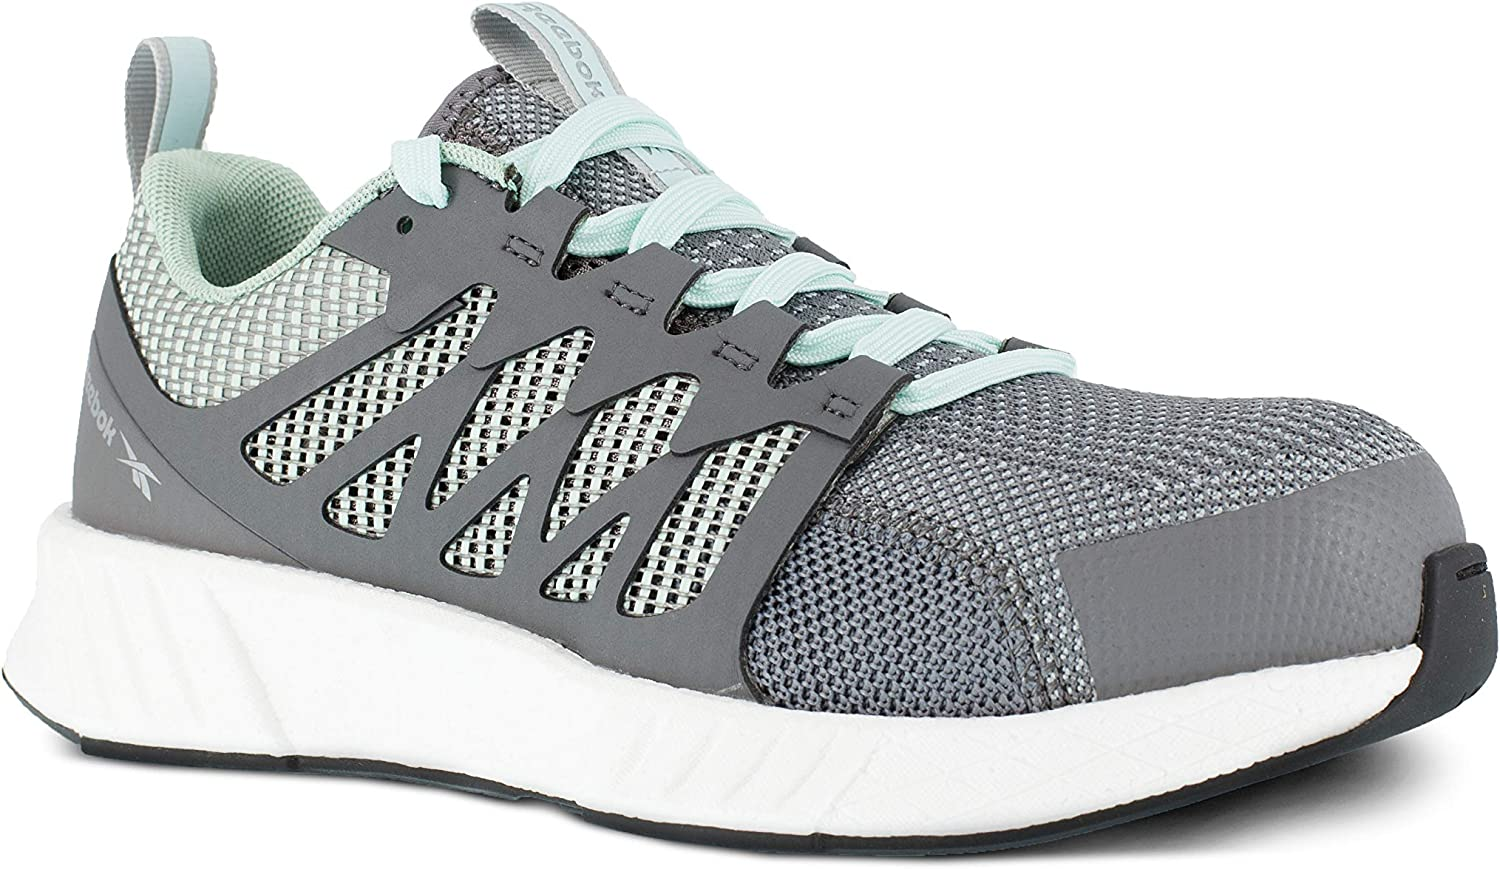 Reebok 67% OFF of fixed price Men's Fusion Flexweave Safety Toe Bombing new work Work Athletic Shoe